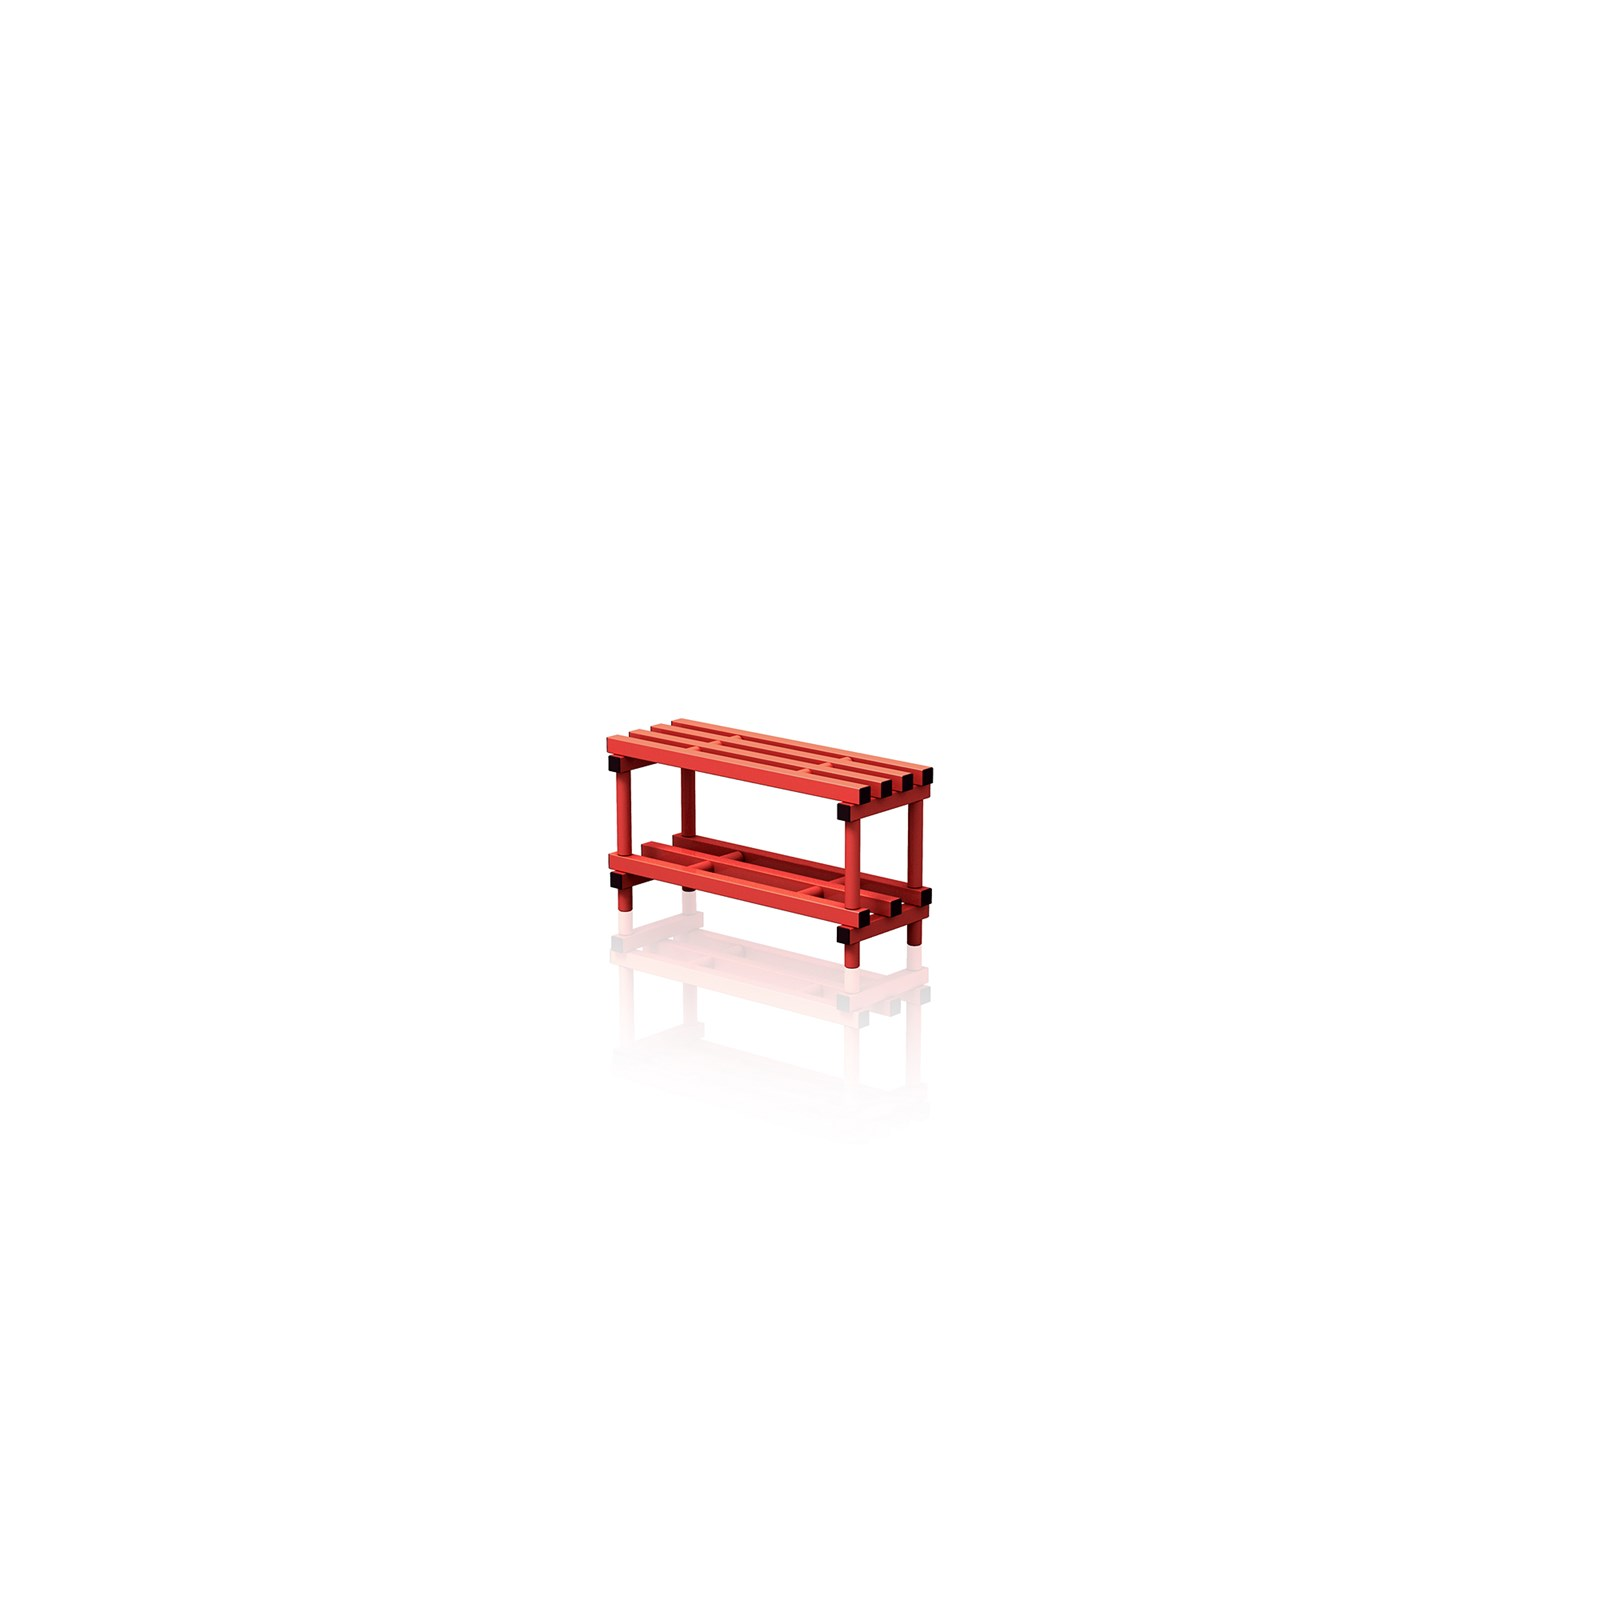 Bench With Bottom Shelf Small Red